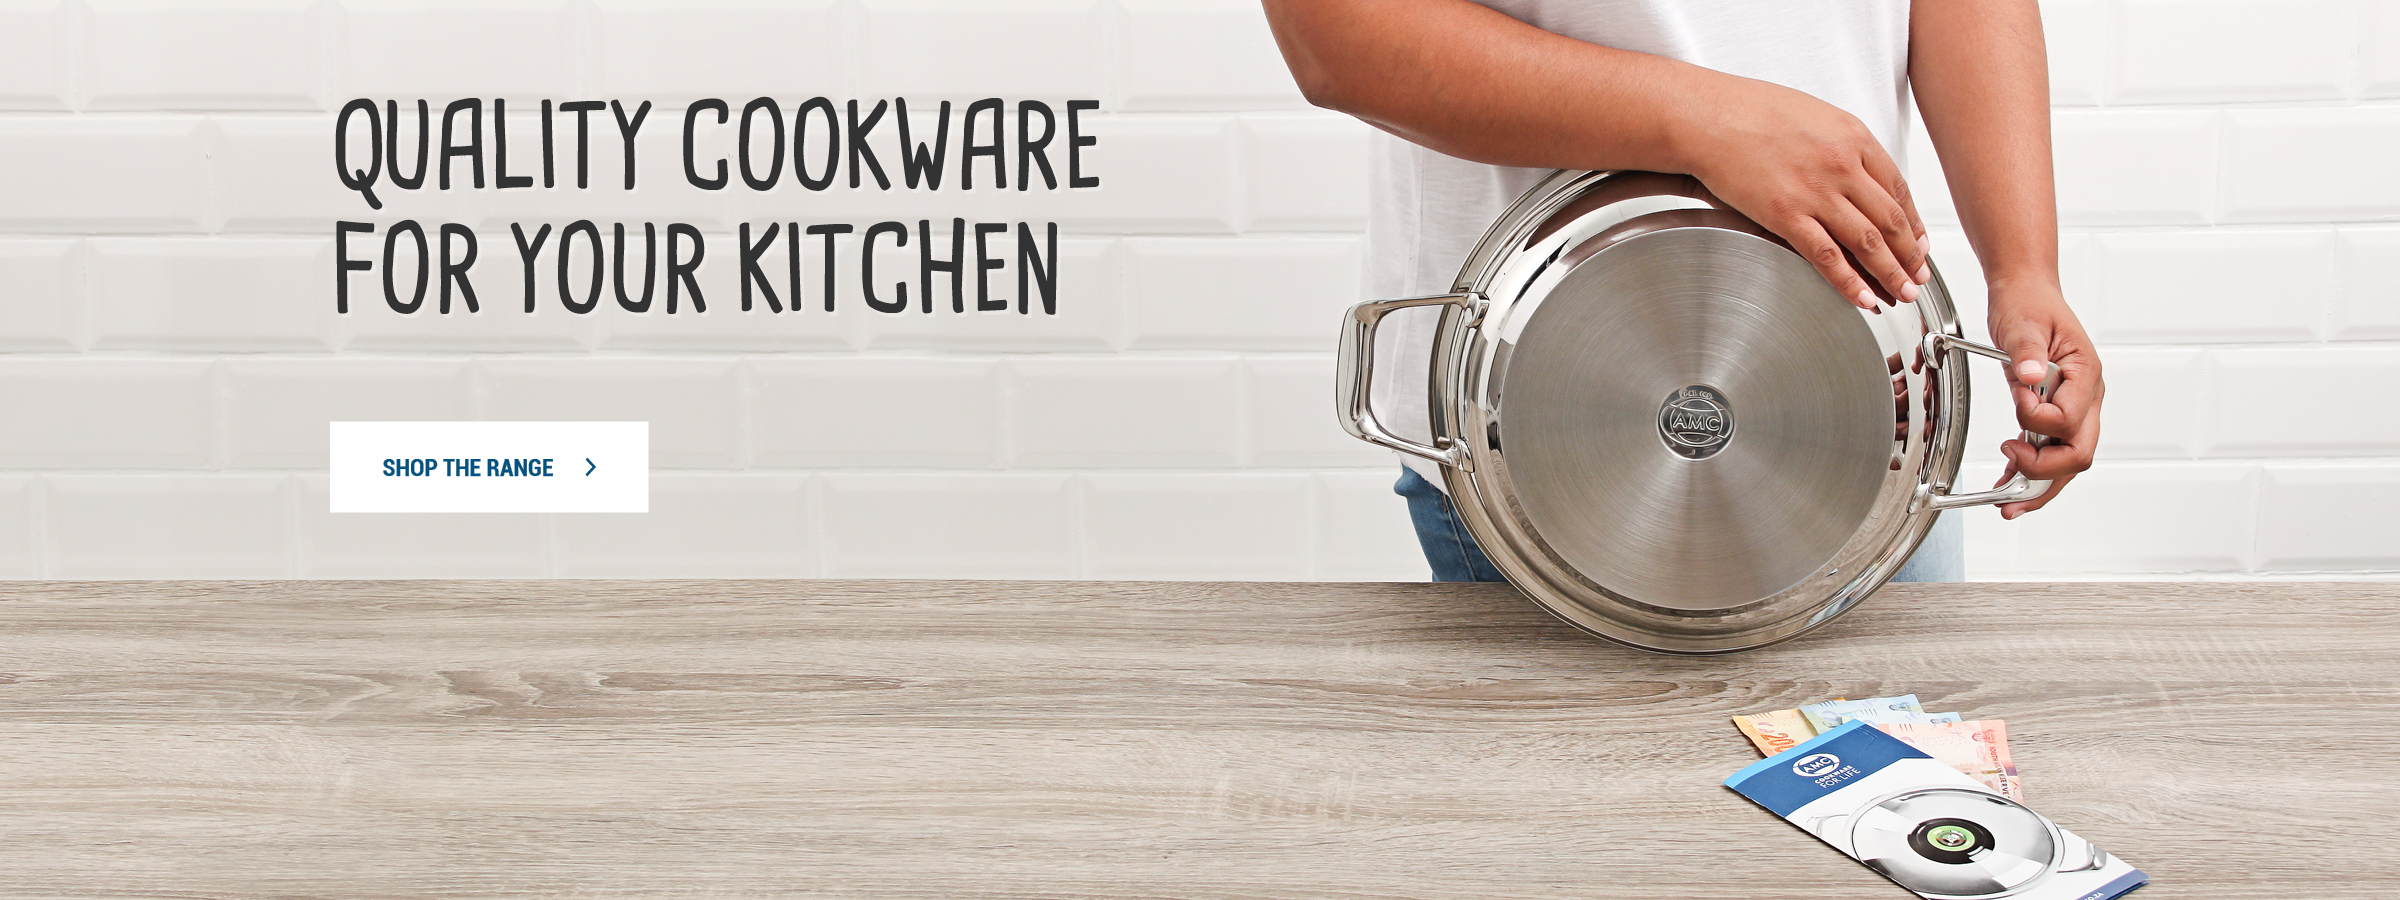 AMC Cookware for your kitchen